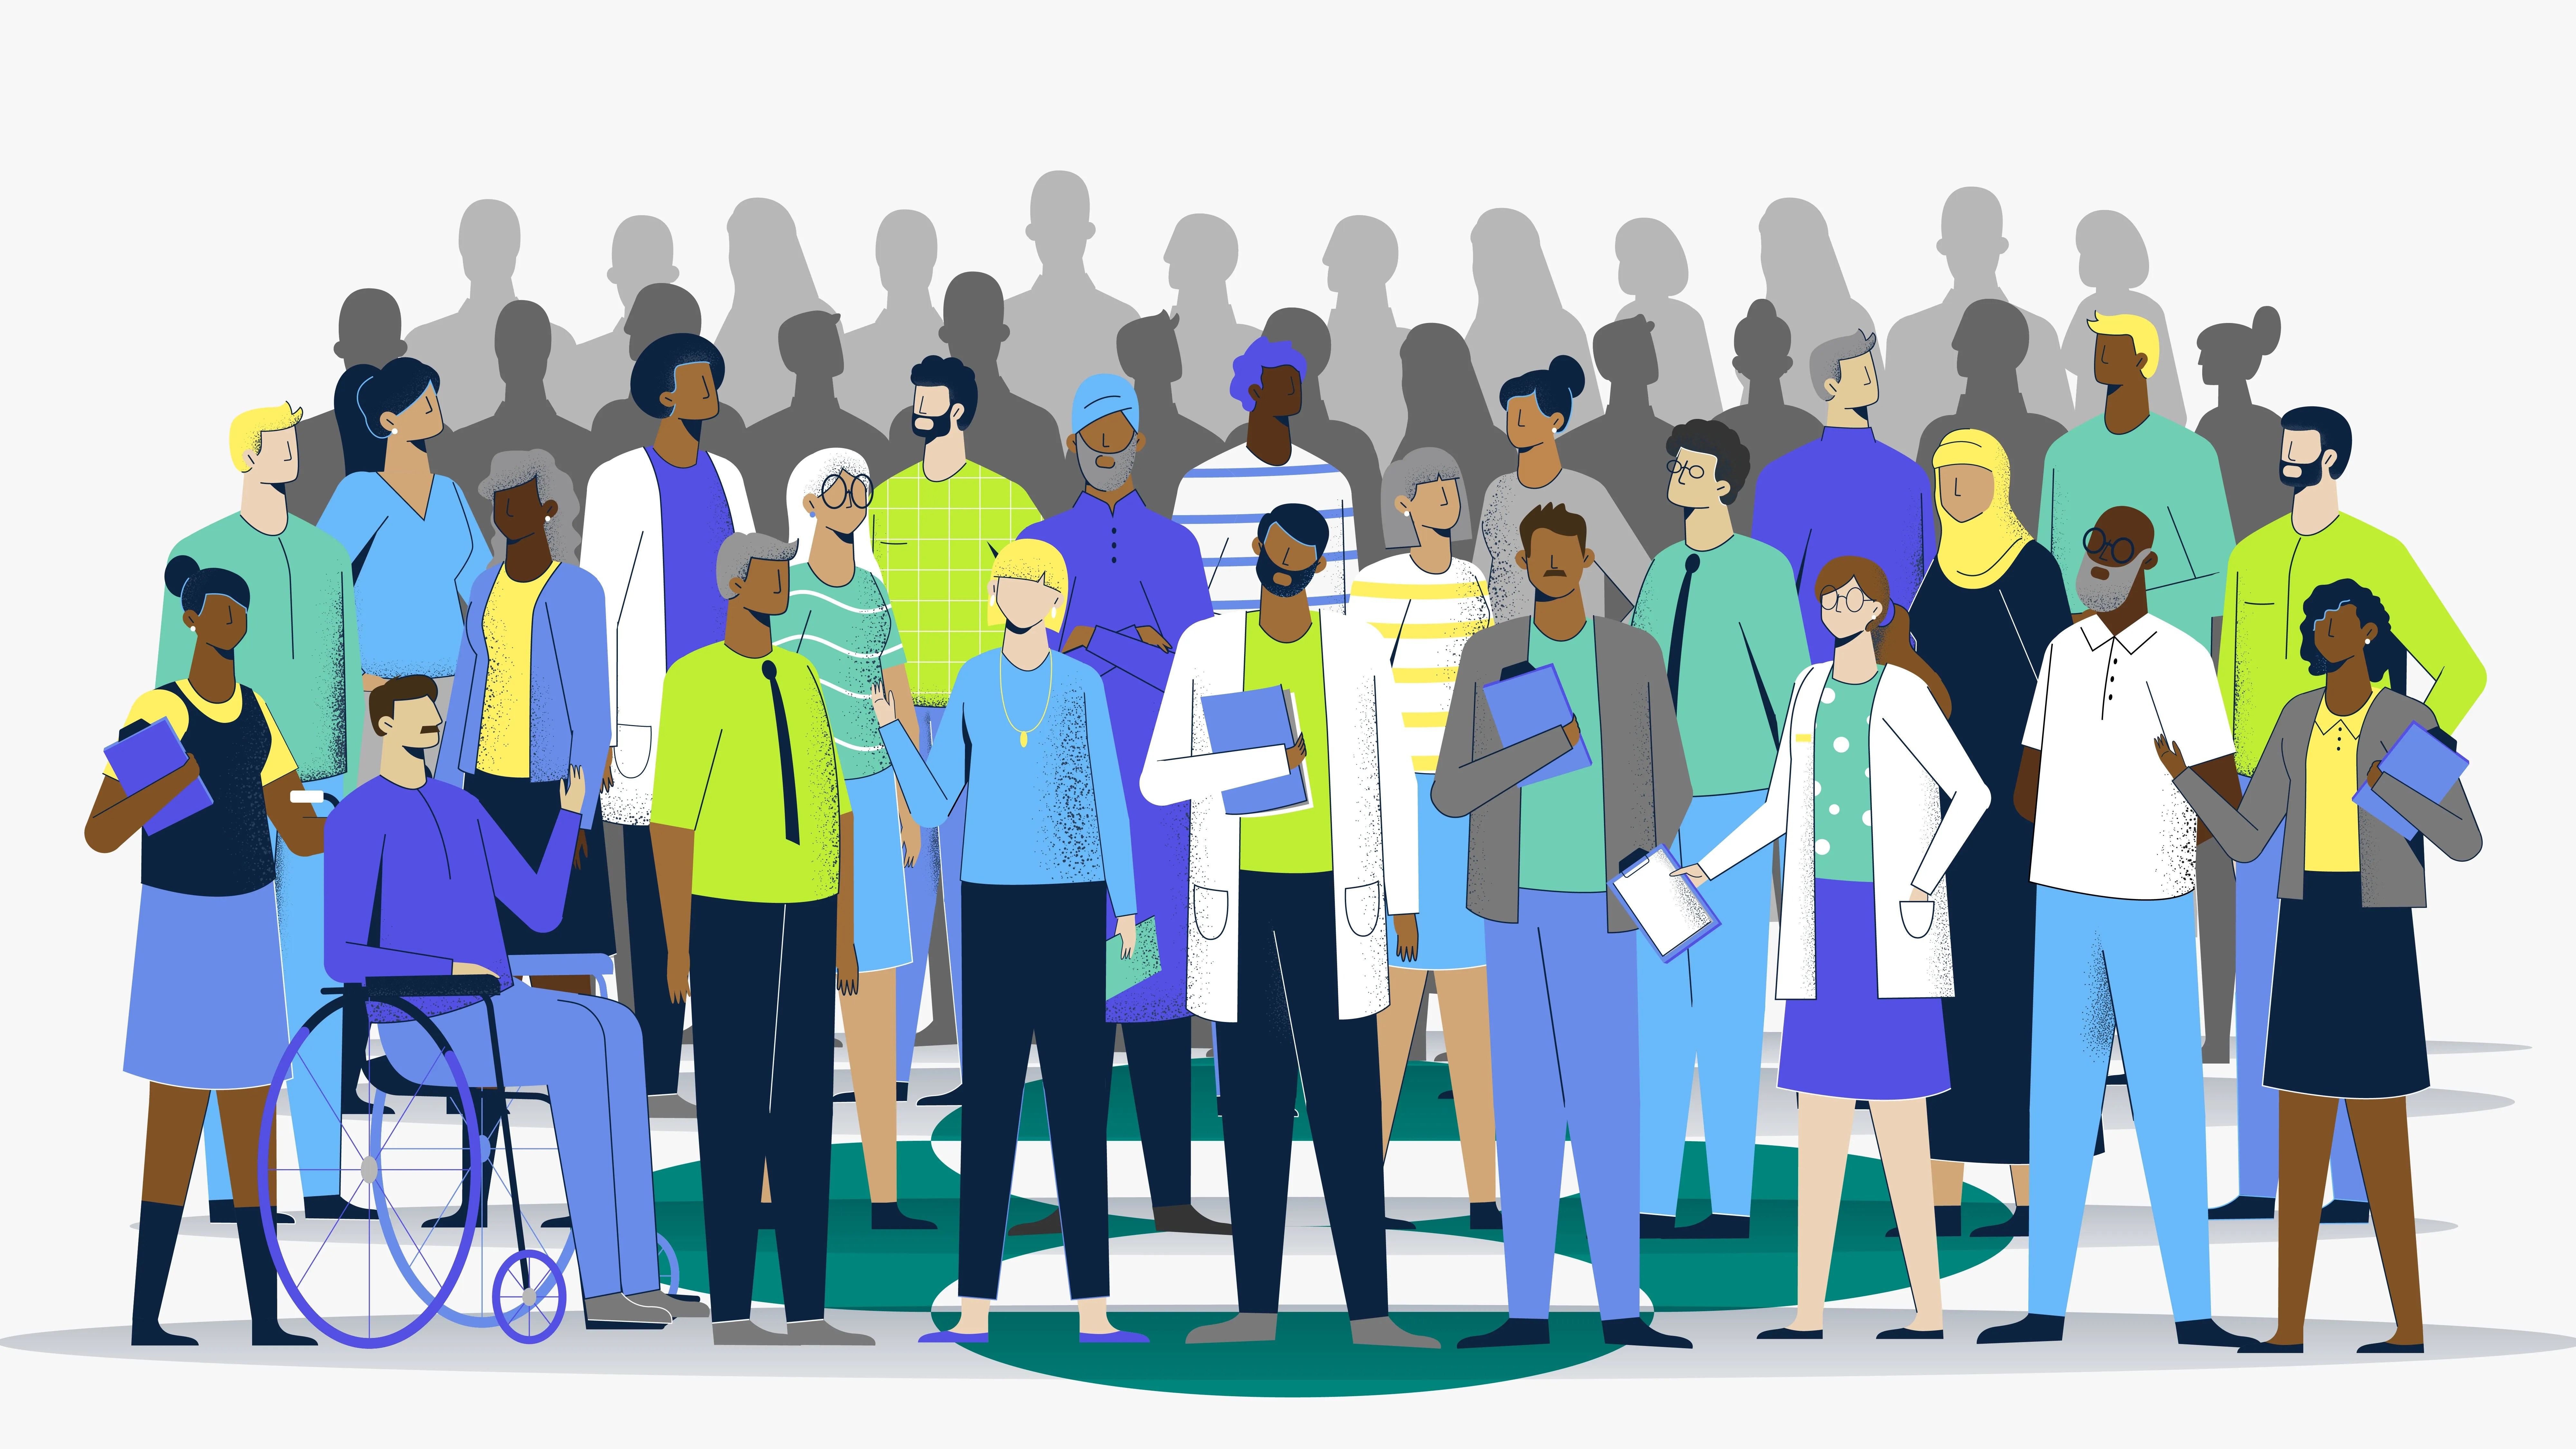 large group of people illustration